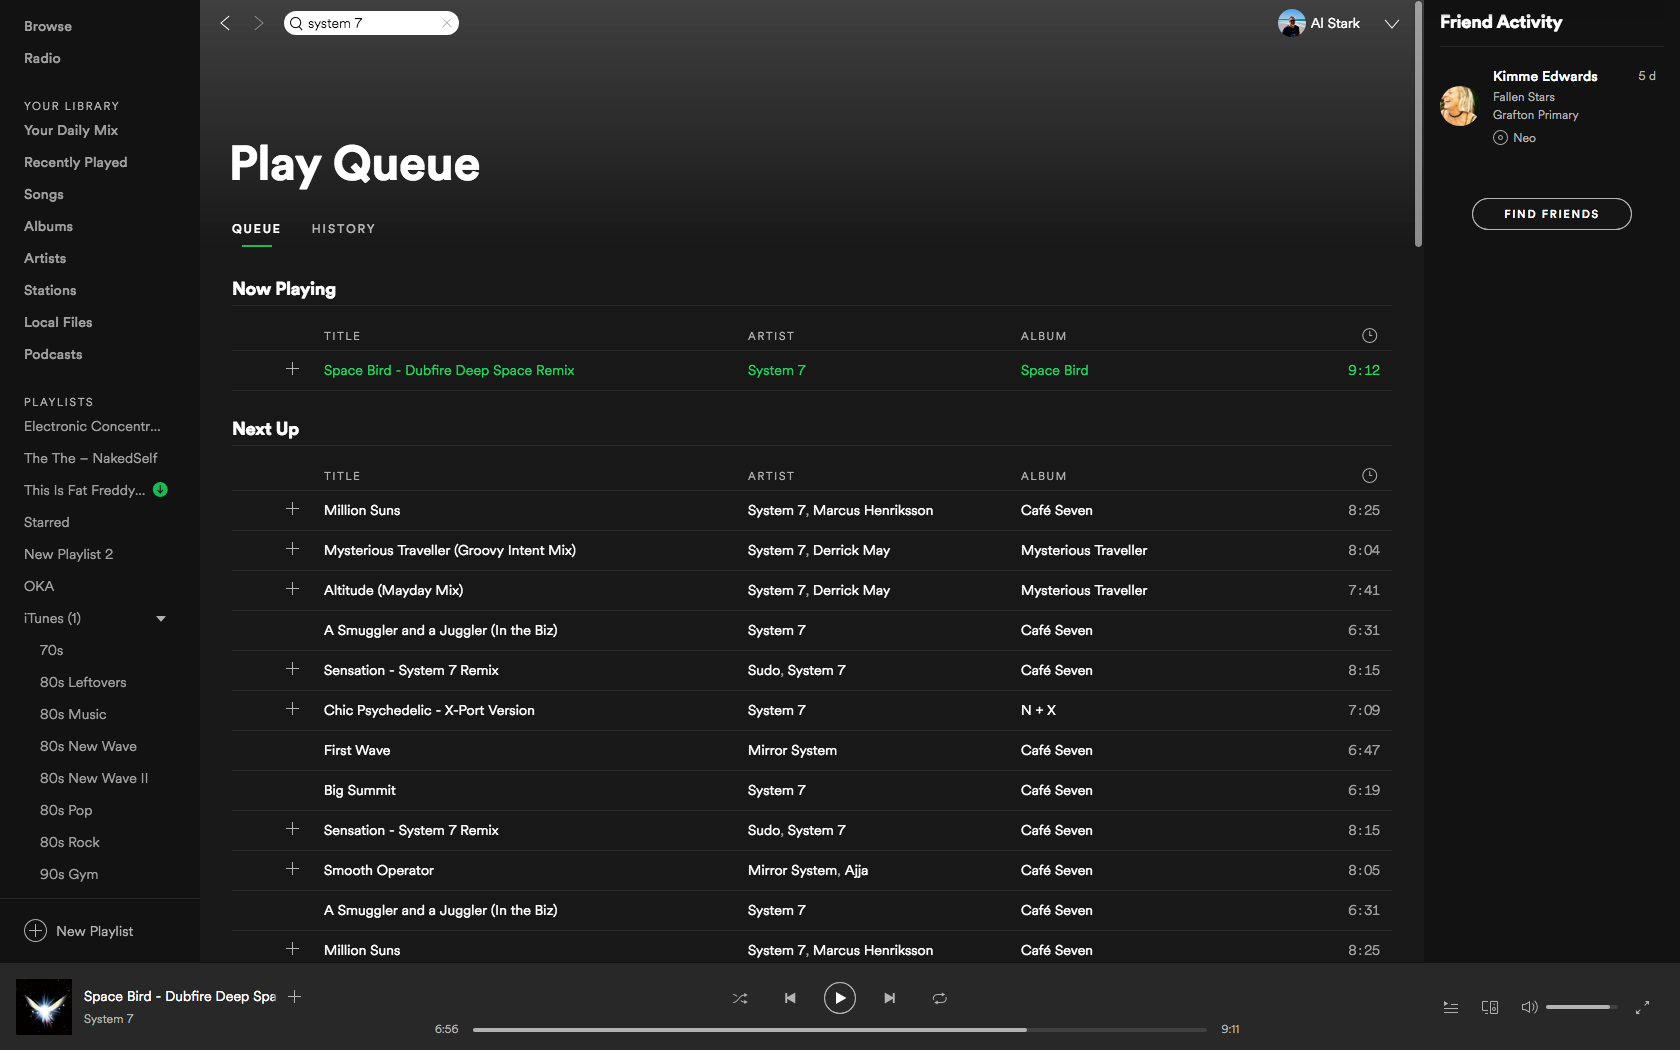 How to make a playlist with someone else on spotify